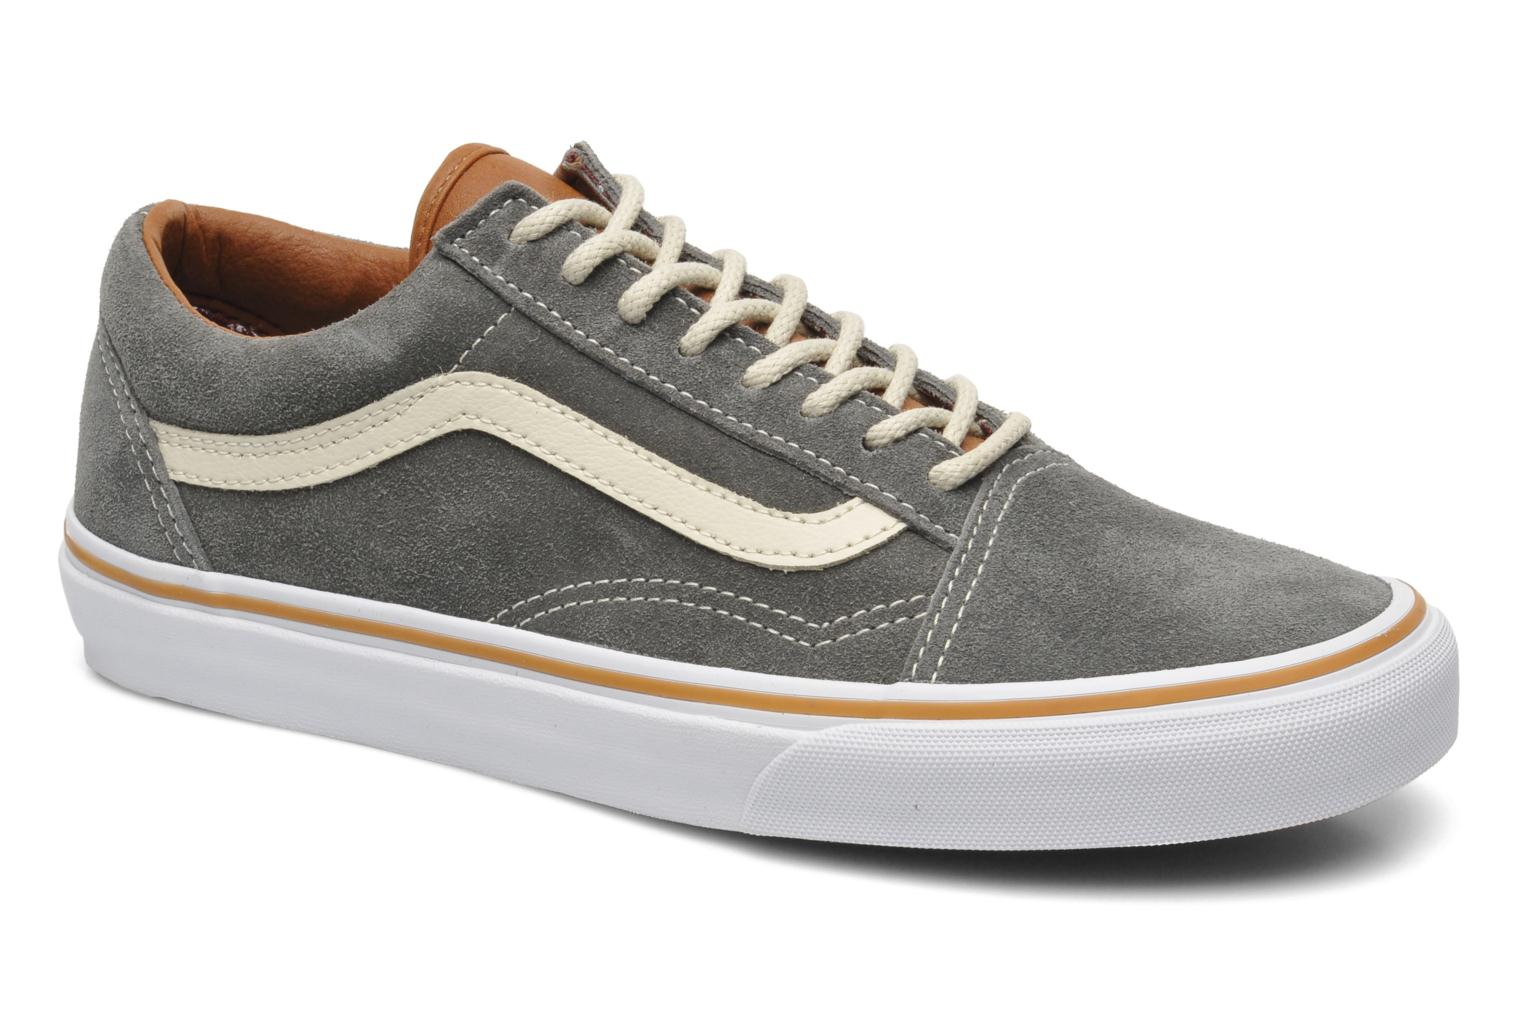 vans old skool gris claro